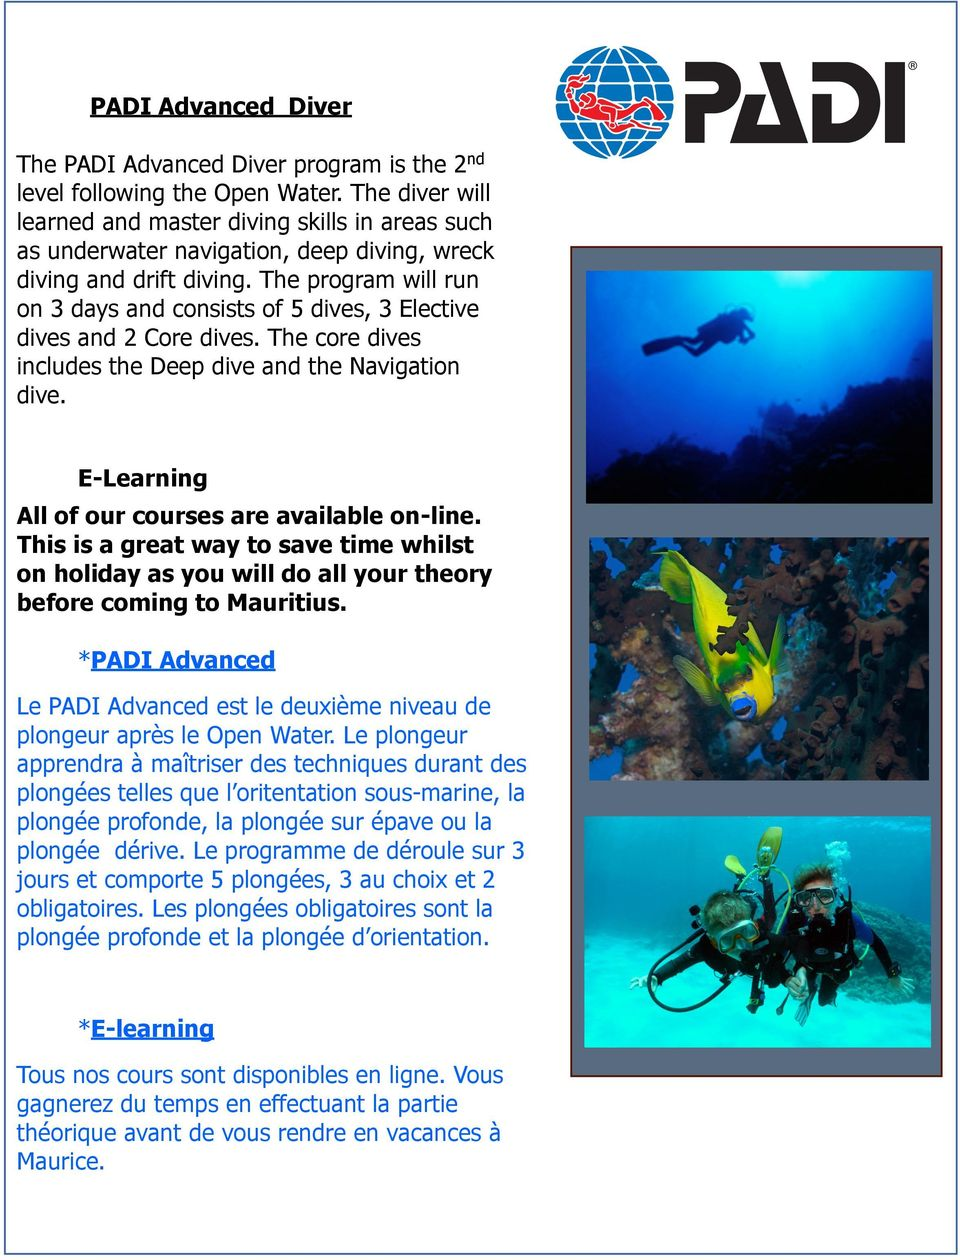 The program will run on 3 days and consists of 5 dives, 3 Elective dives and 2 Core dives. The core dives includes the Deep dive and the Navigation dive.